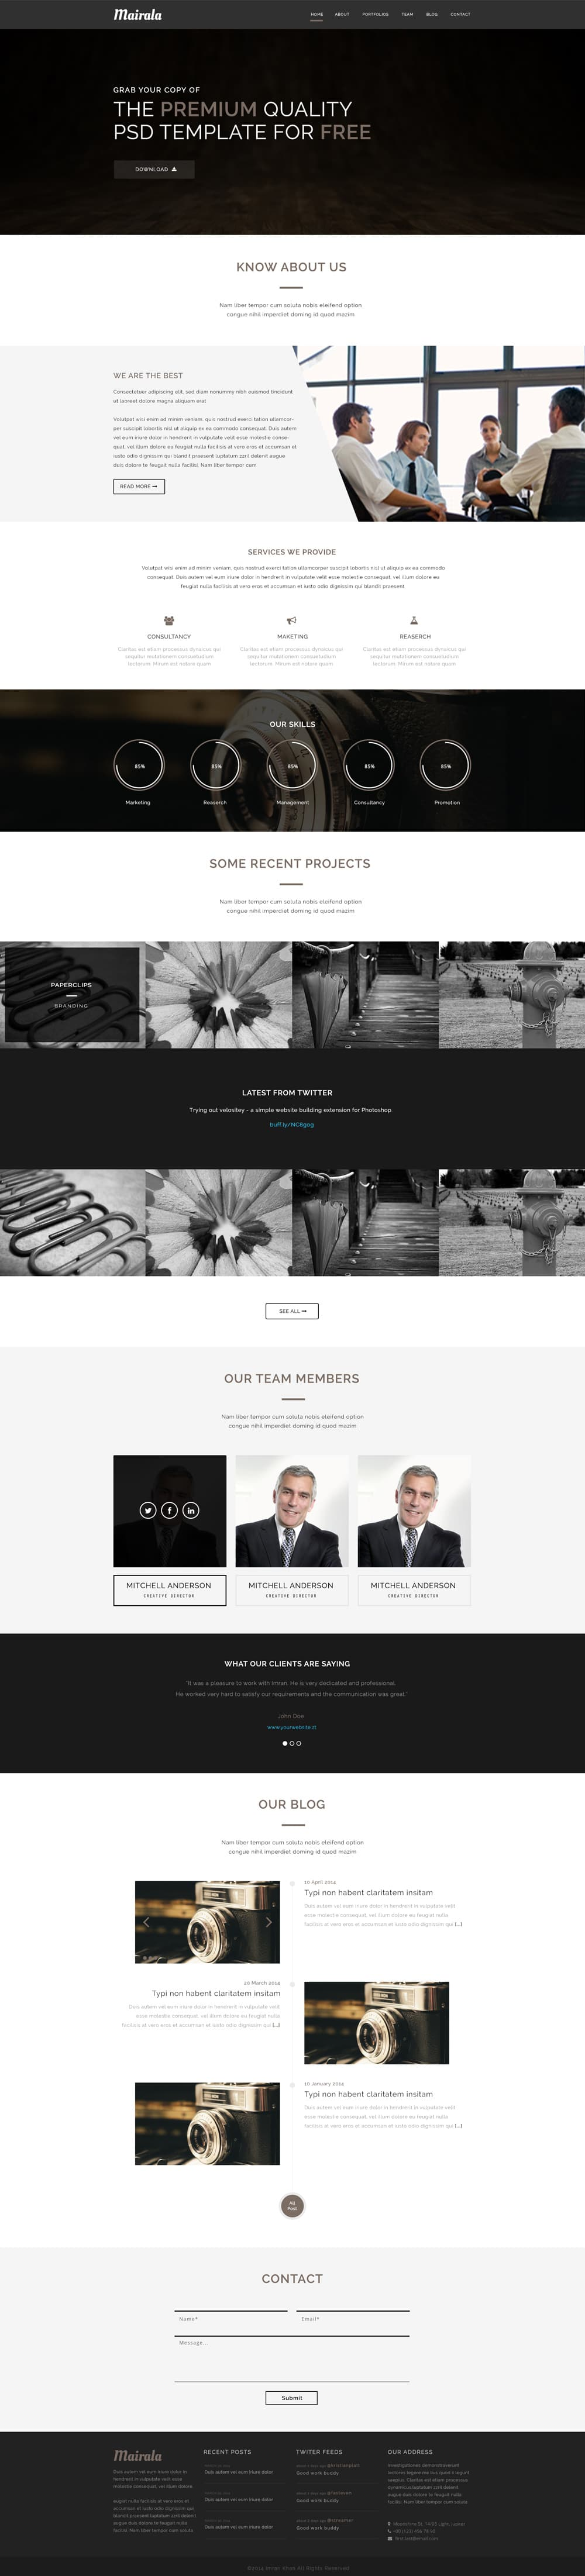 Free-One-Page-Corporate-Agency-Web-Template-PSD